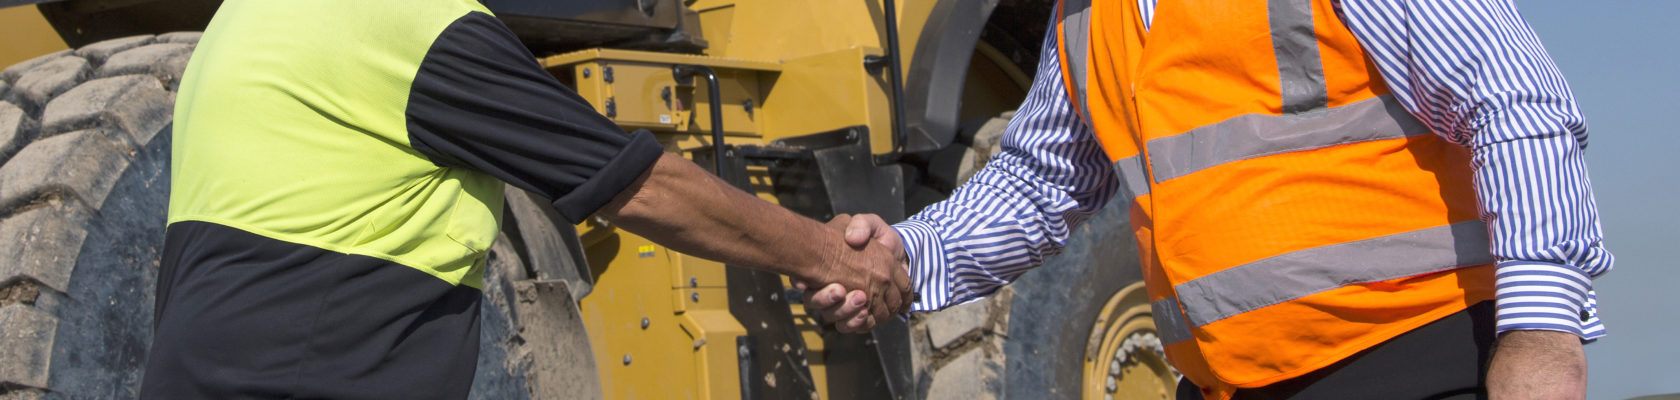 Two men shaking hands in front of Cat machine